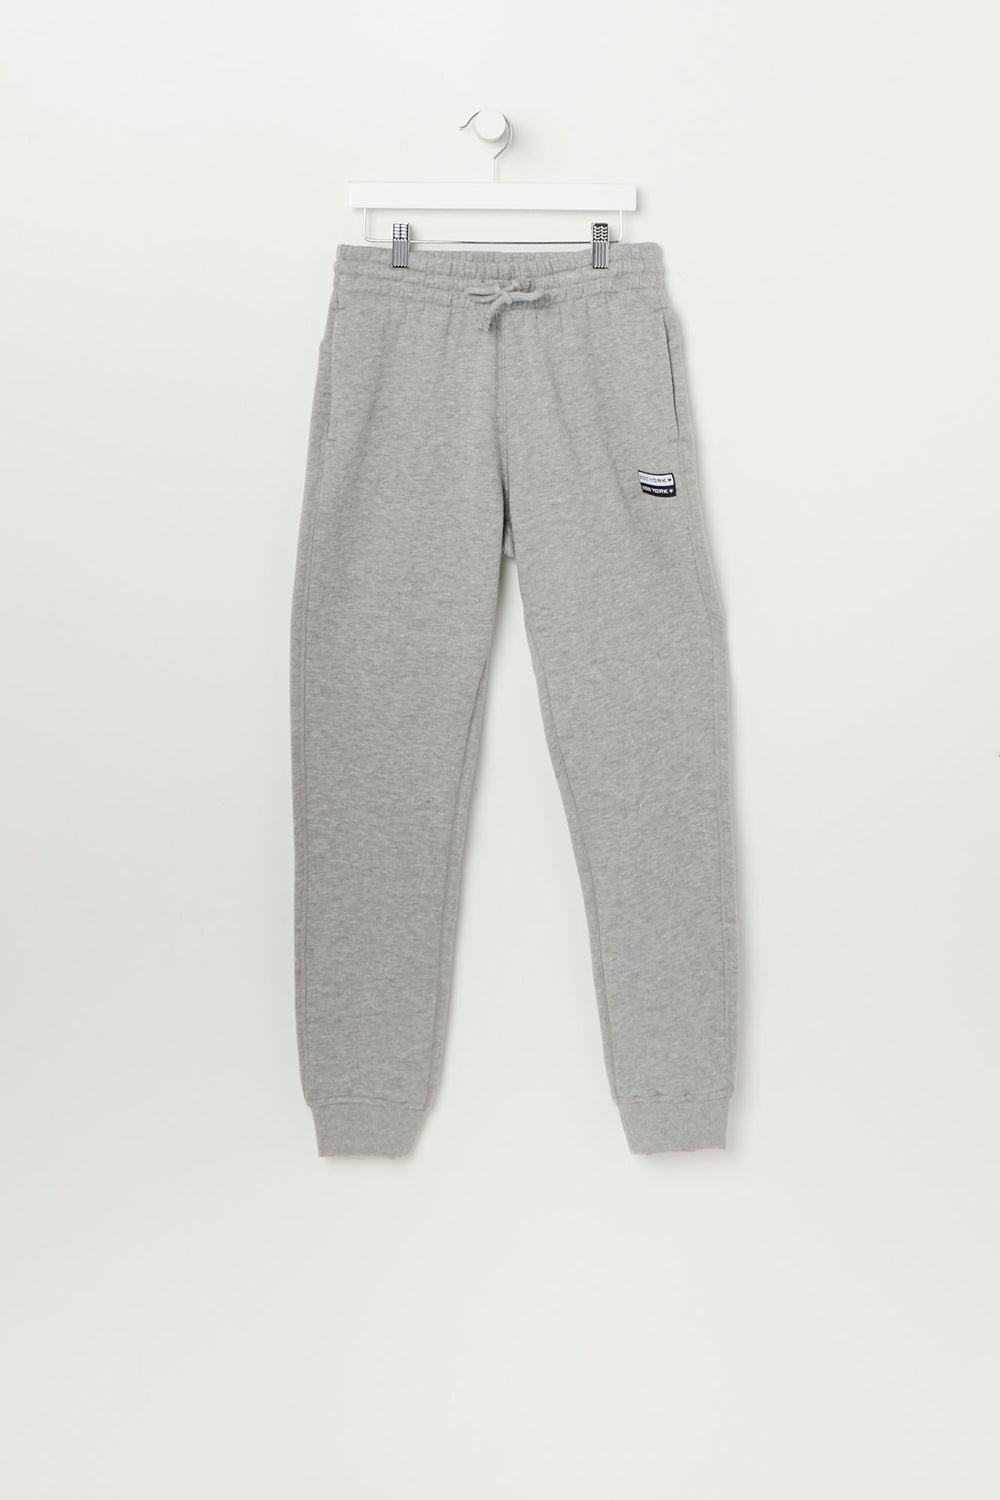 Jogger Zoo York Junior Gris